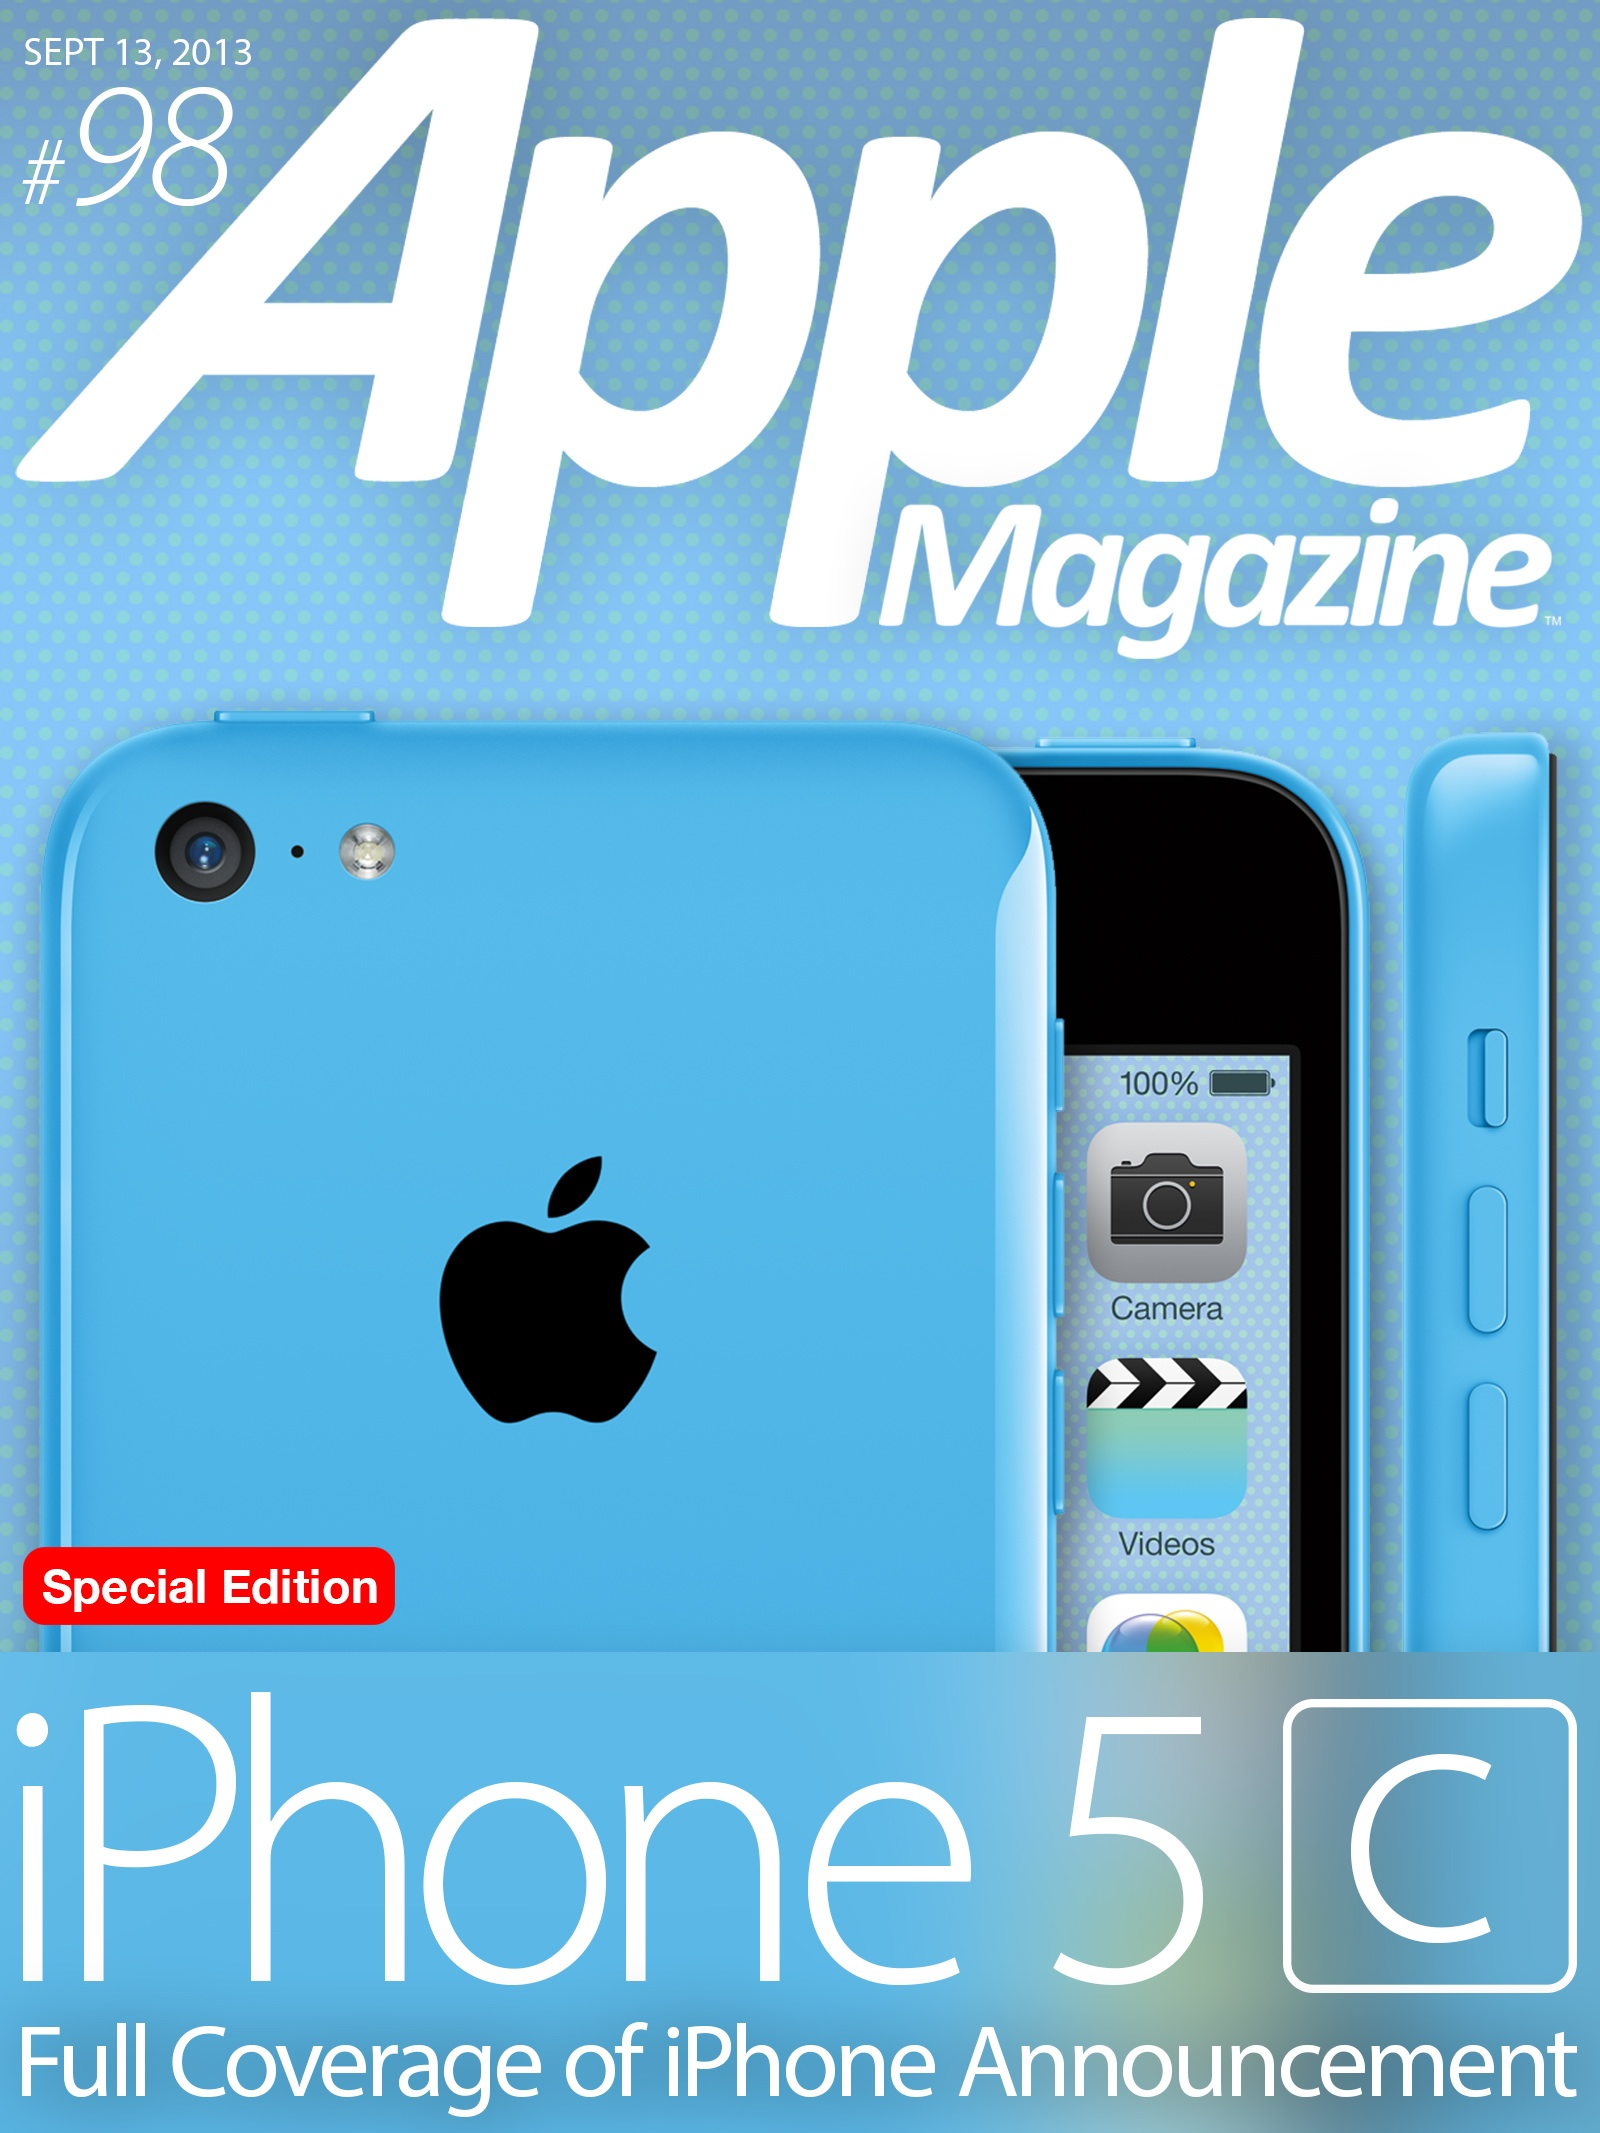 Photo of Apple's iPhone 5c This Week in AppleMagazine